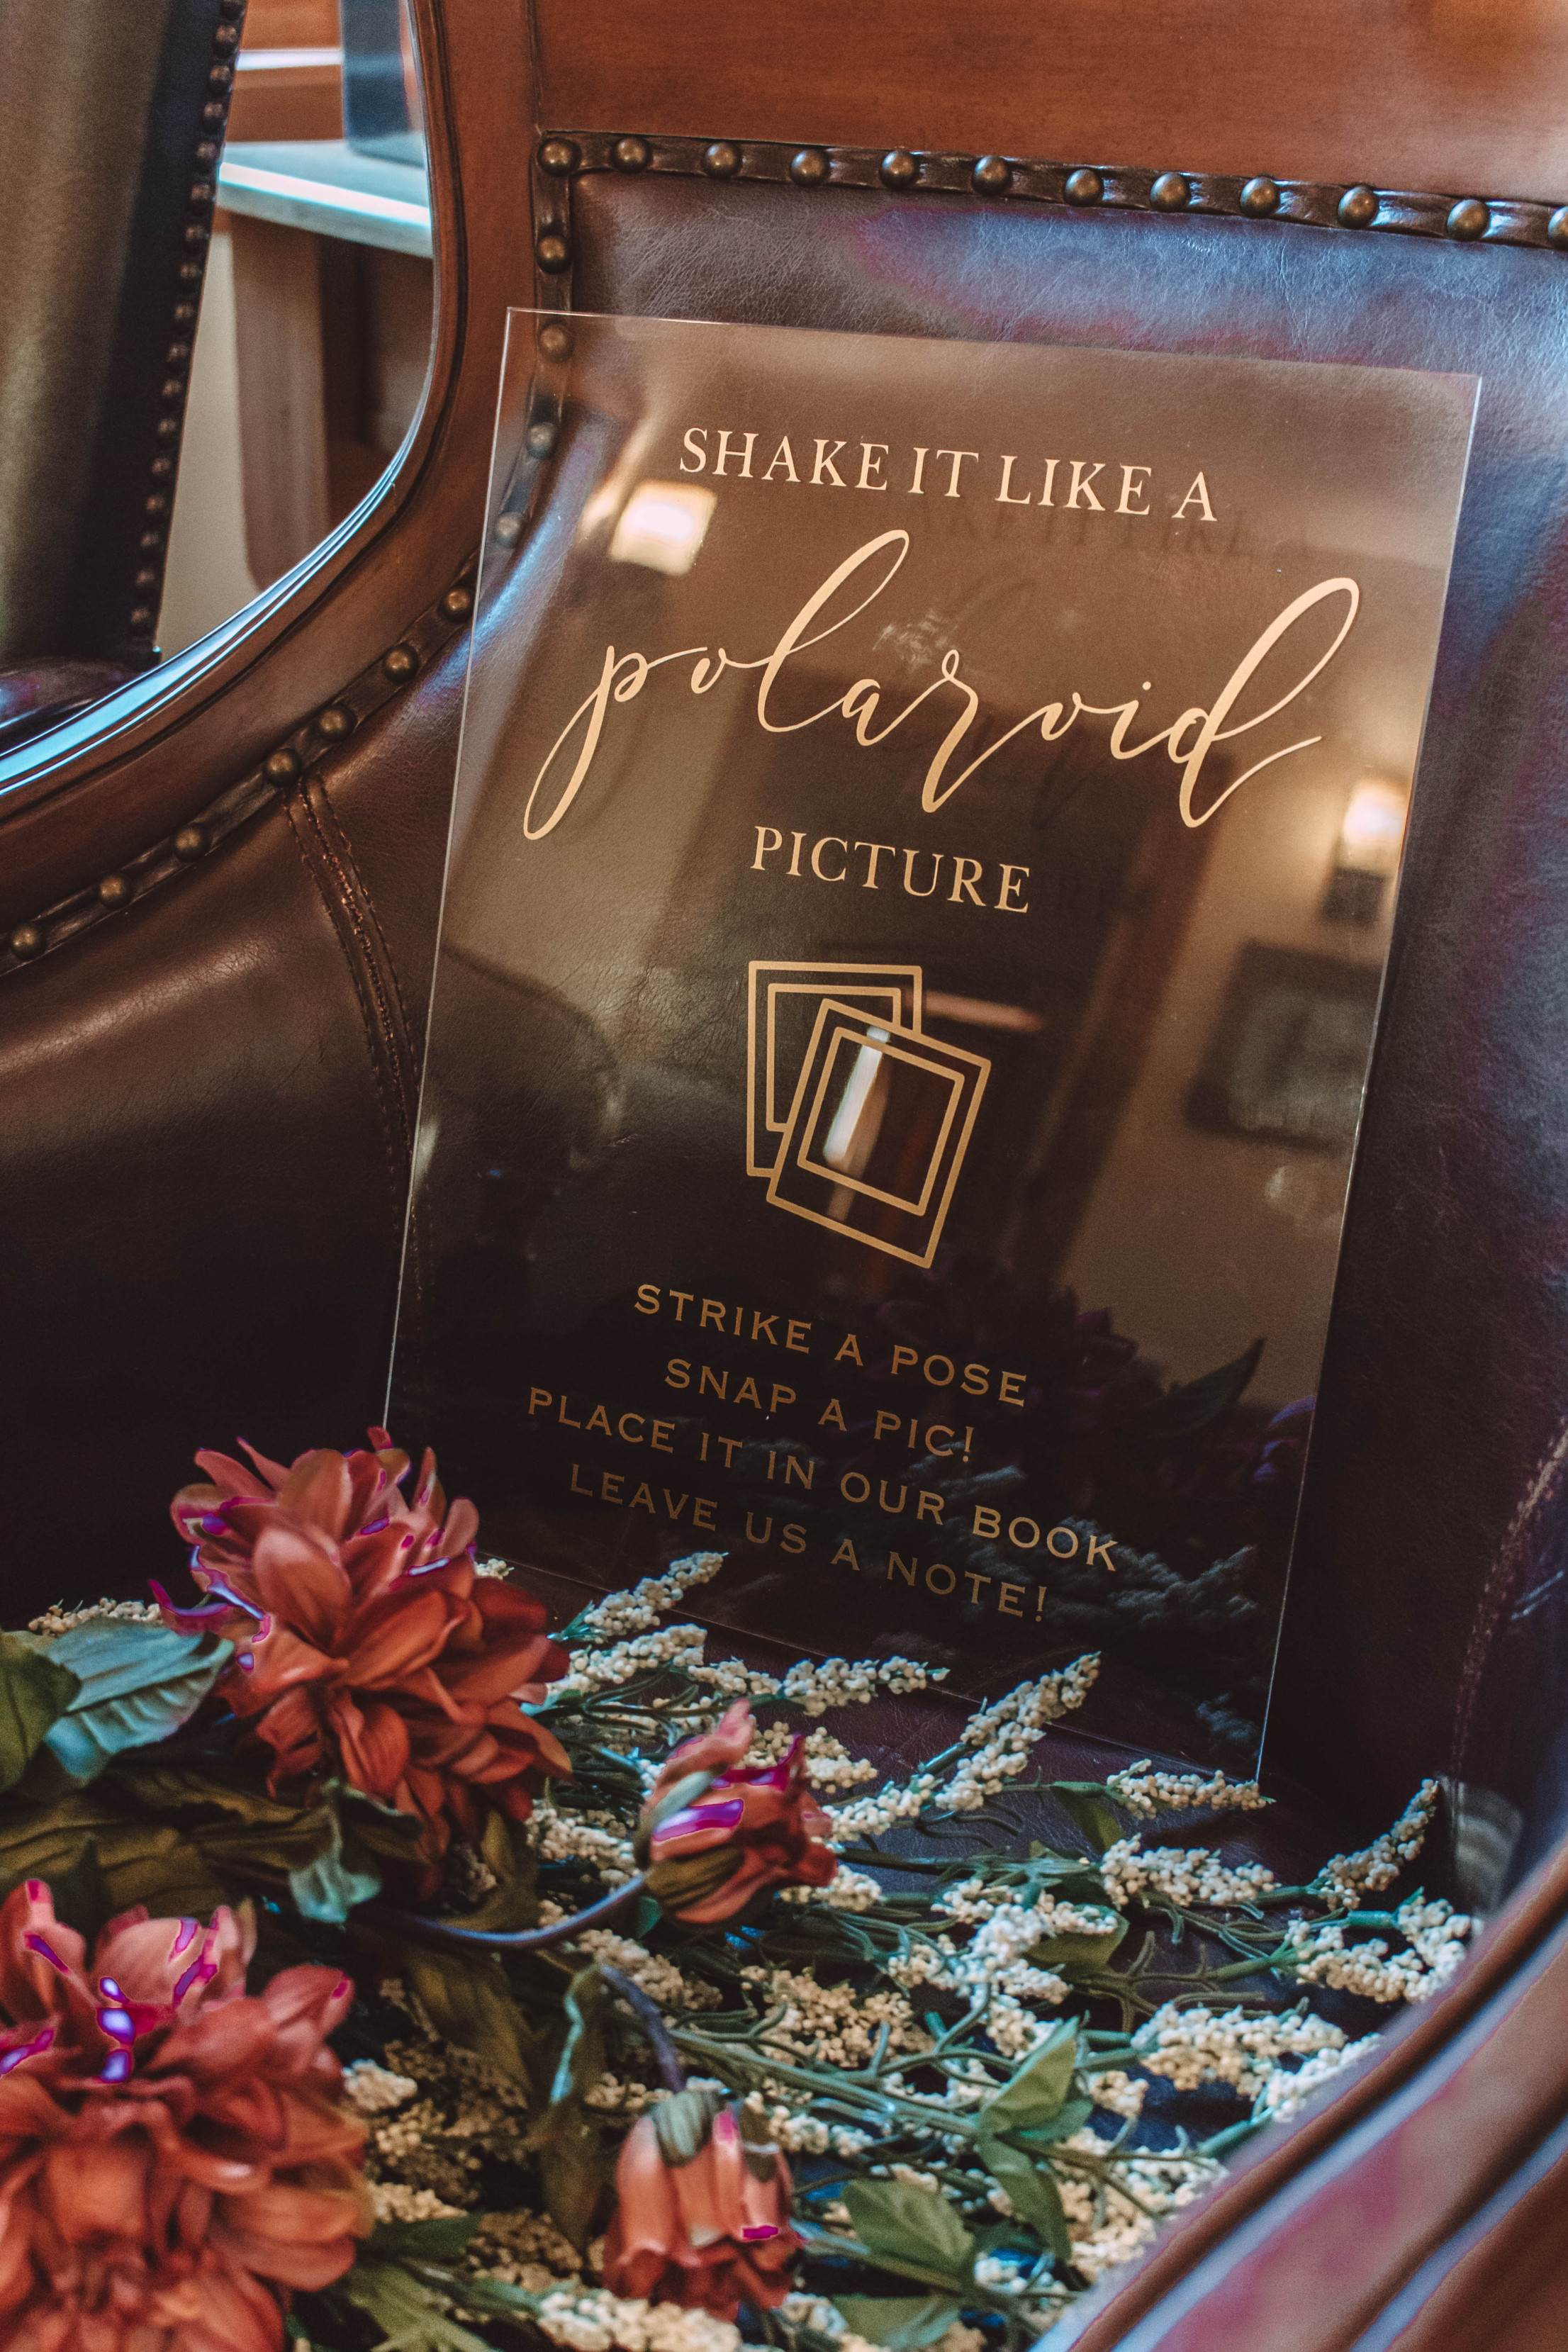 Interview With the Maker of Our Wedding Signs